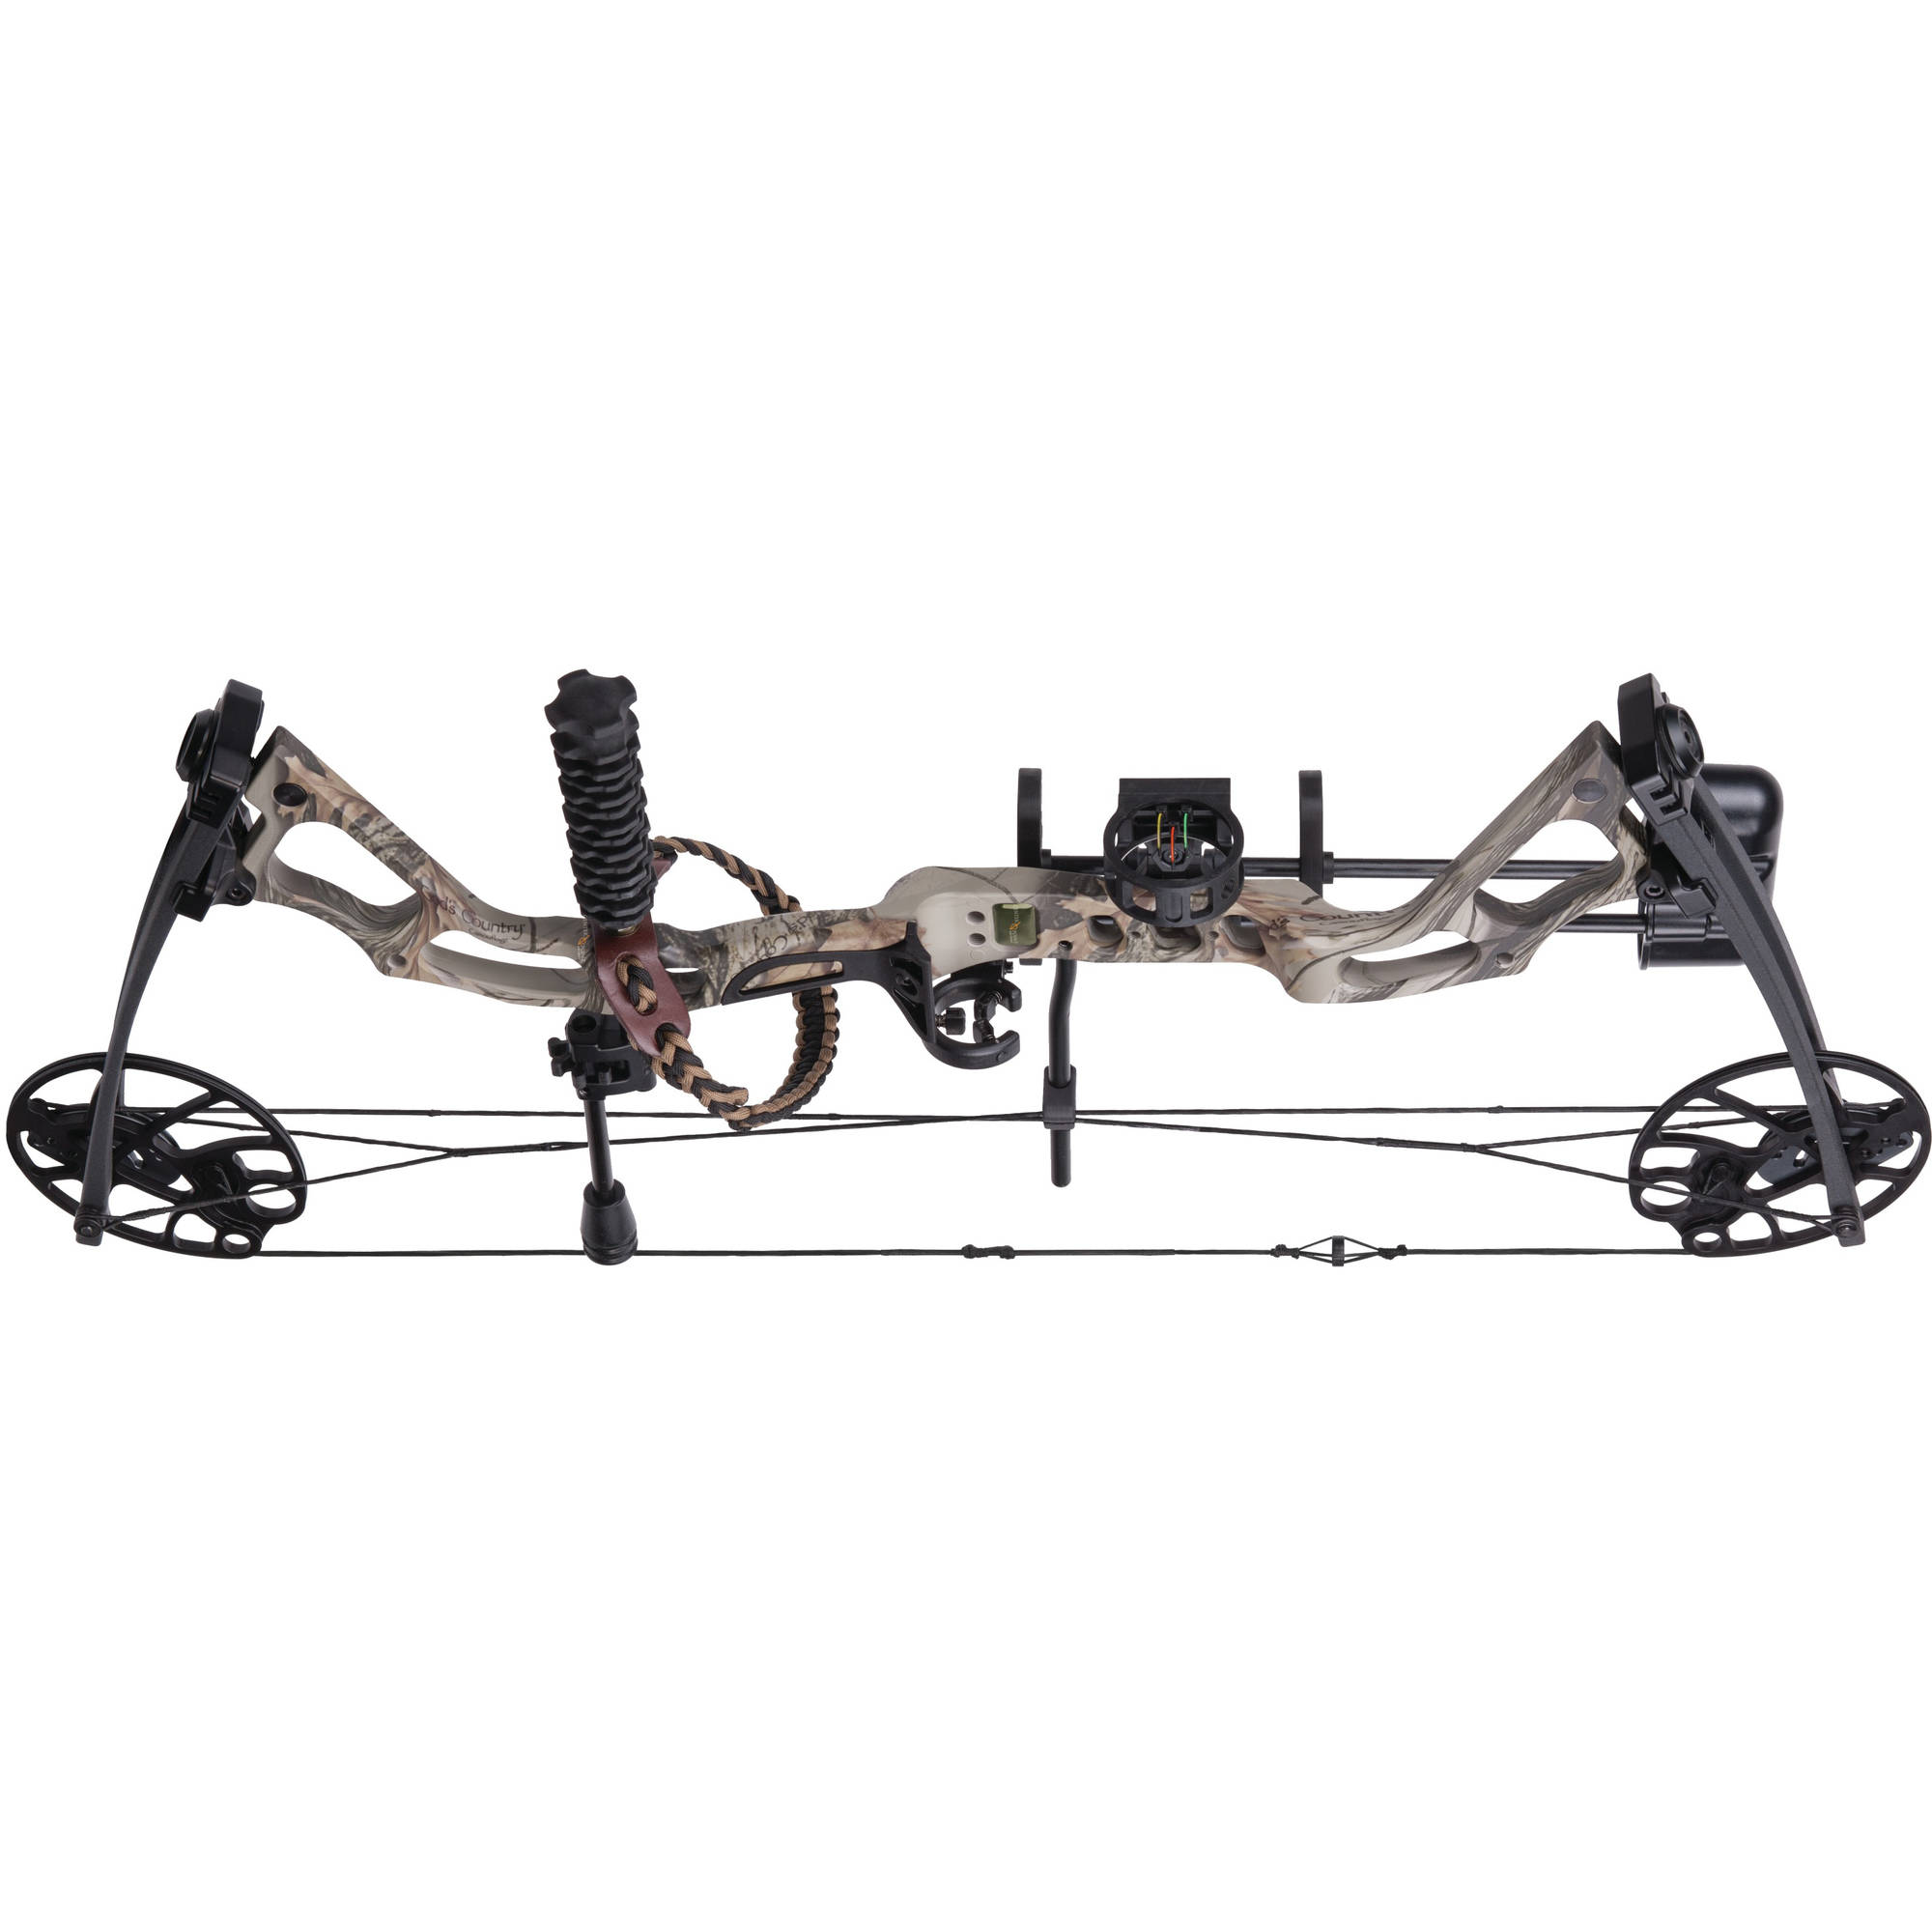 CenterPoint EOS Hunter AVCEH70KT Vertical Compound Bow with Fiber Optic Sight by Velocity Outdoor